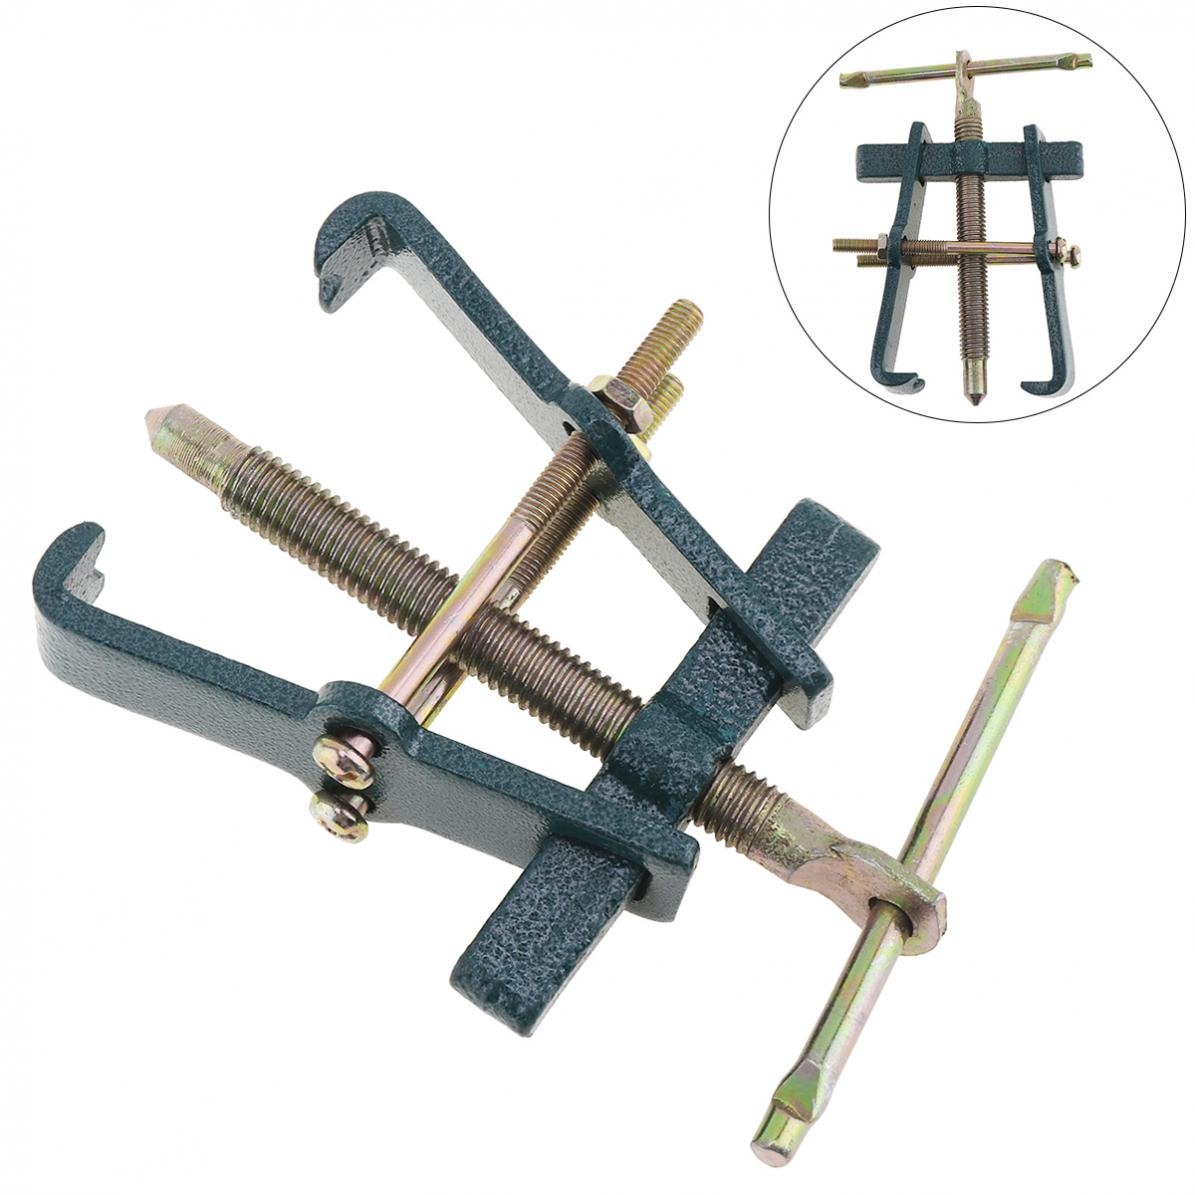 Practical 3 Inch Two-claw Puller Separate Lifting Device Multi-purpose Pull Strengthen Bearing Rama for Auto <font><b>Mechanic</b></font> Hand <font><b>Tools</b></font> image